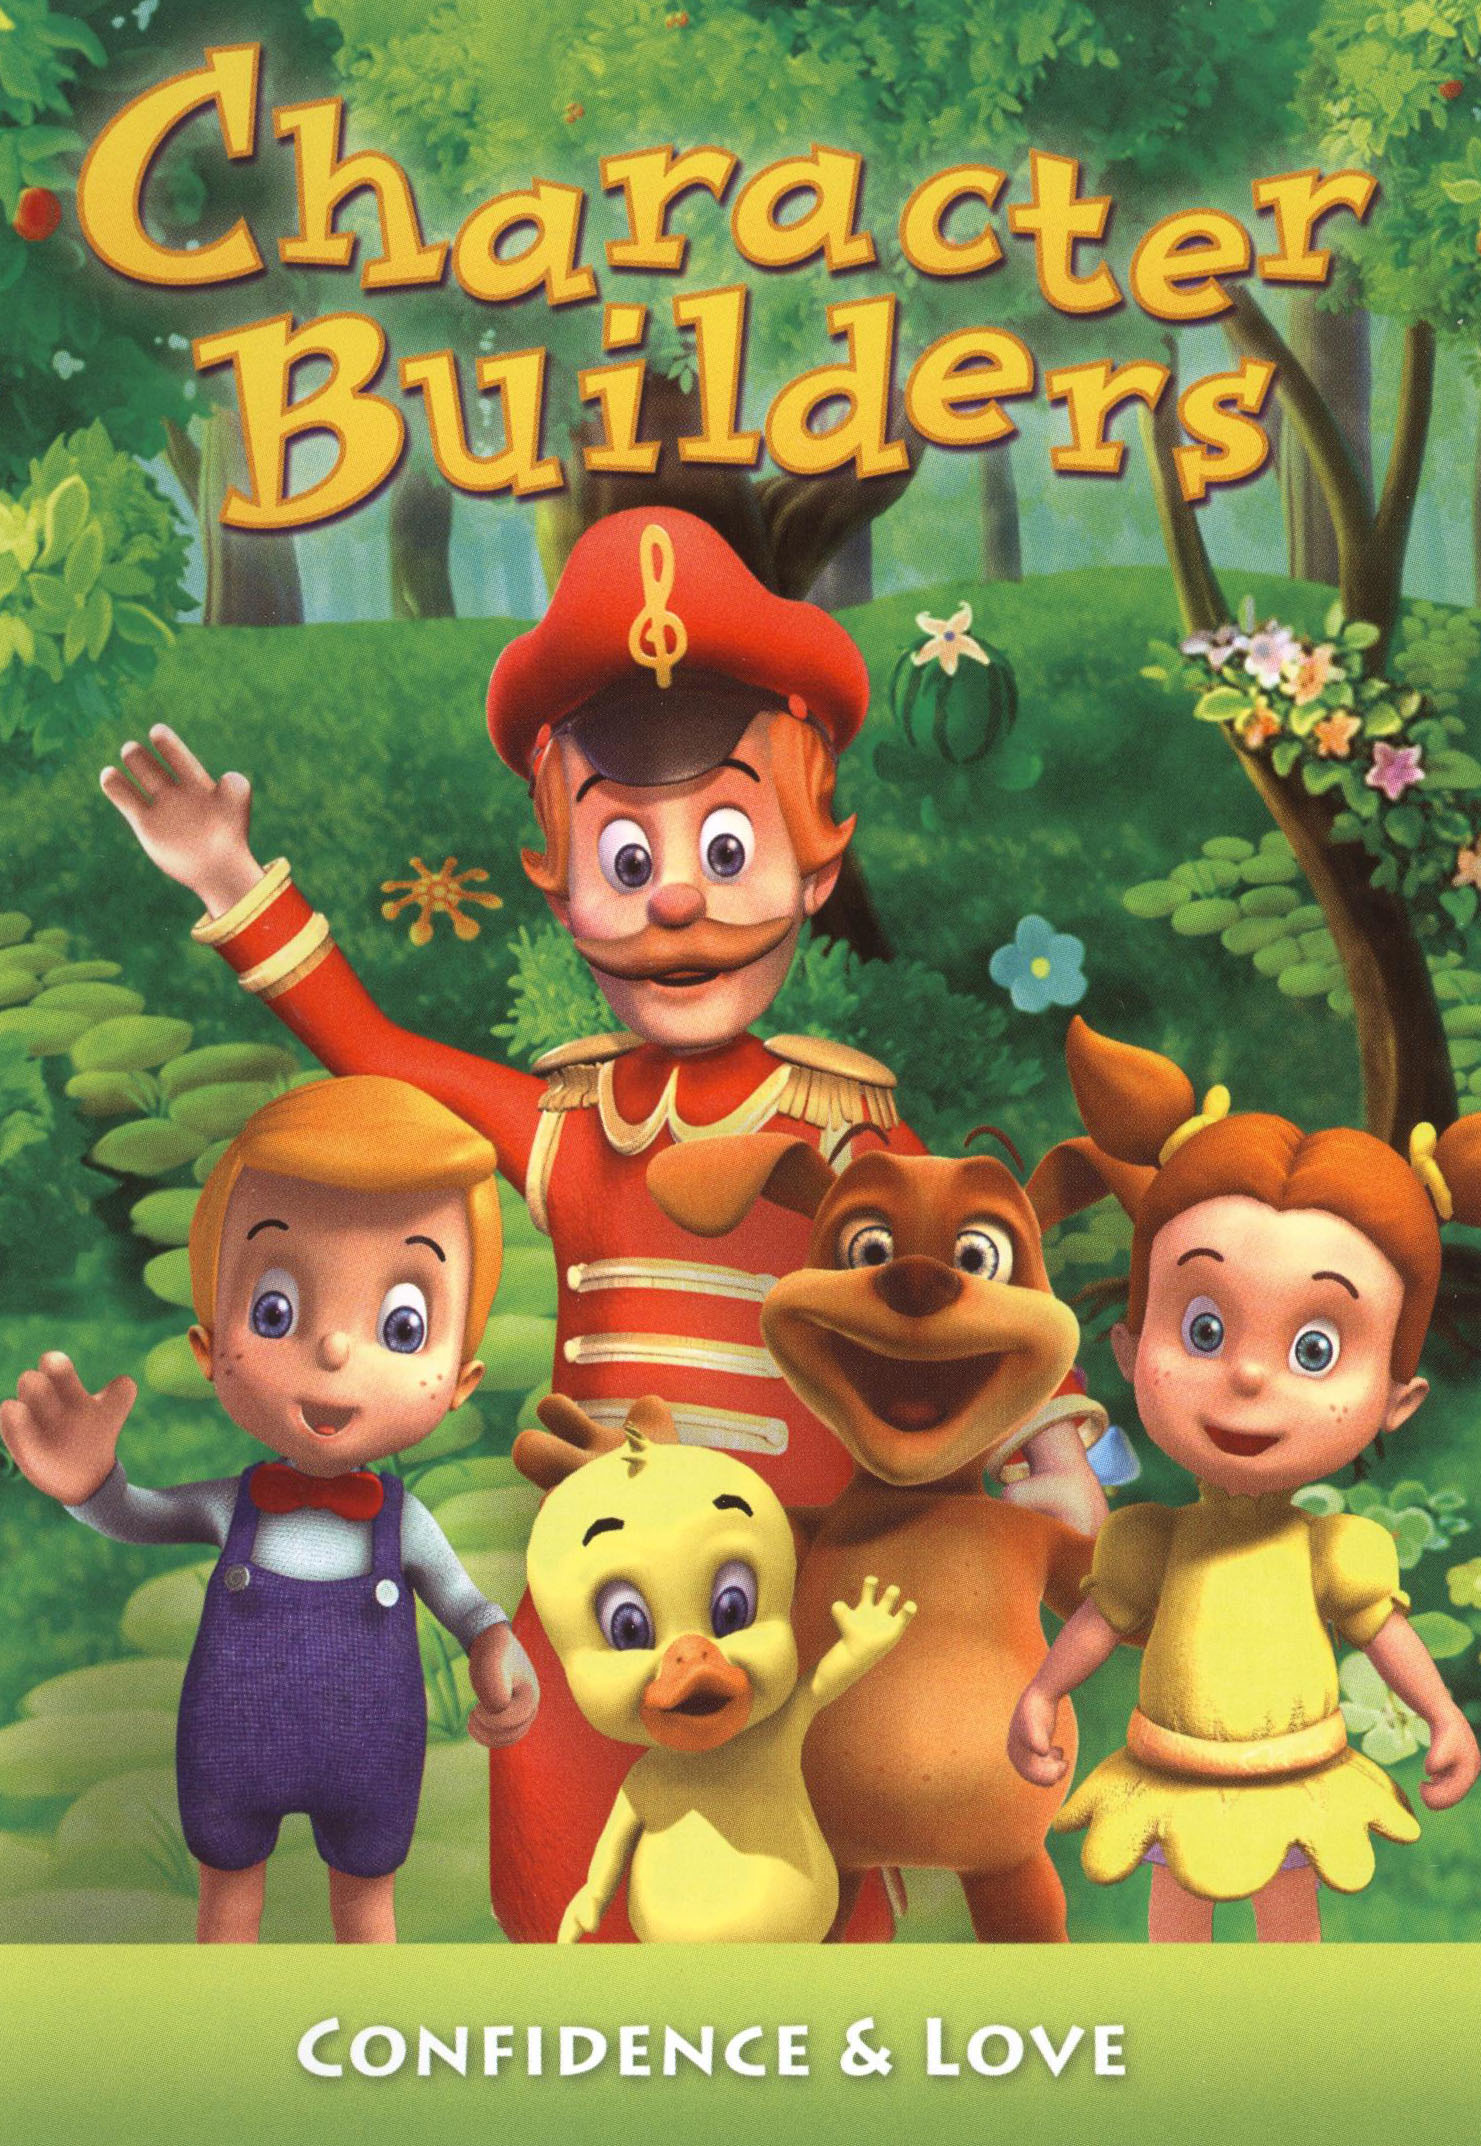 Character Builders: Learn More About Confidence and Love